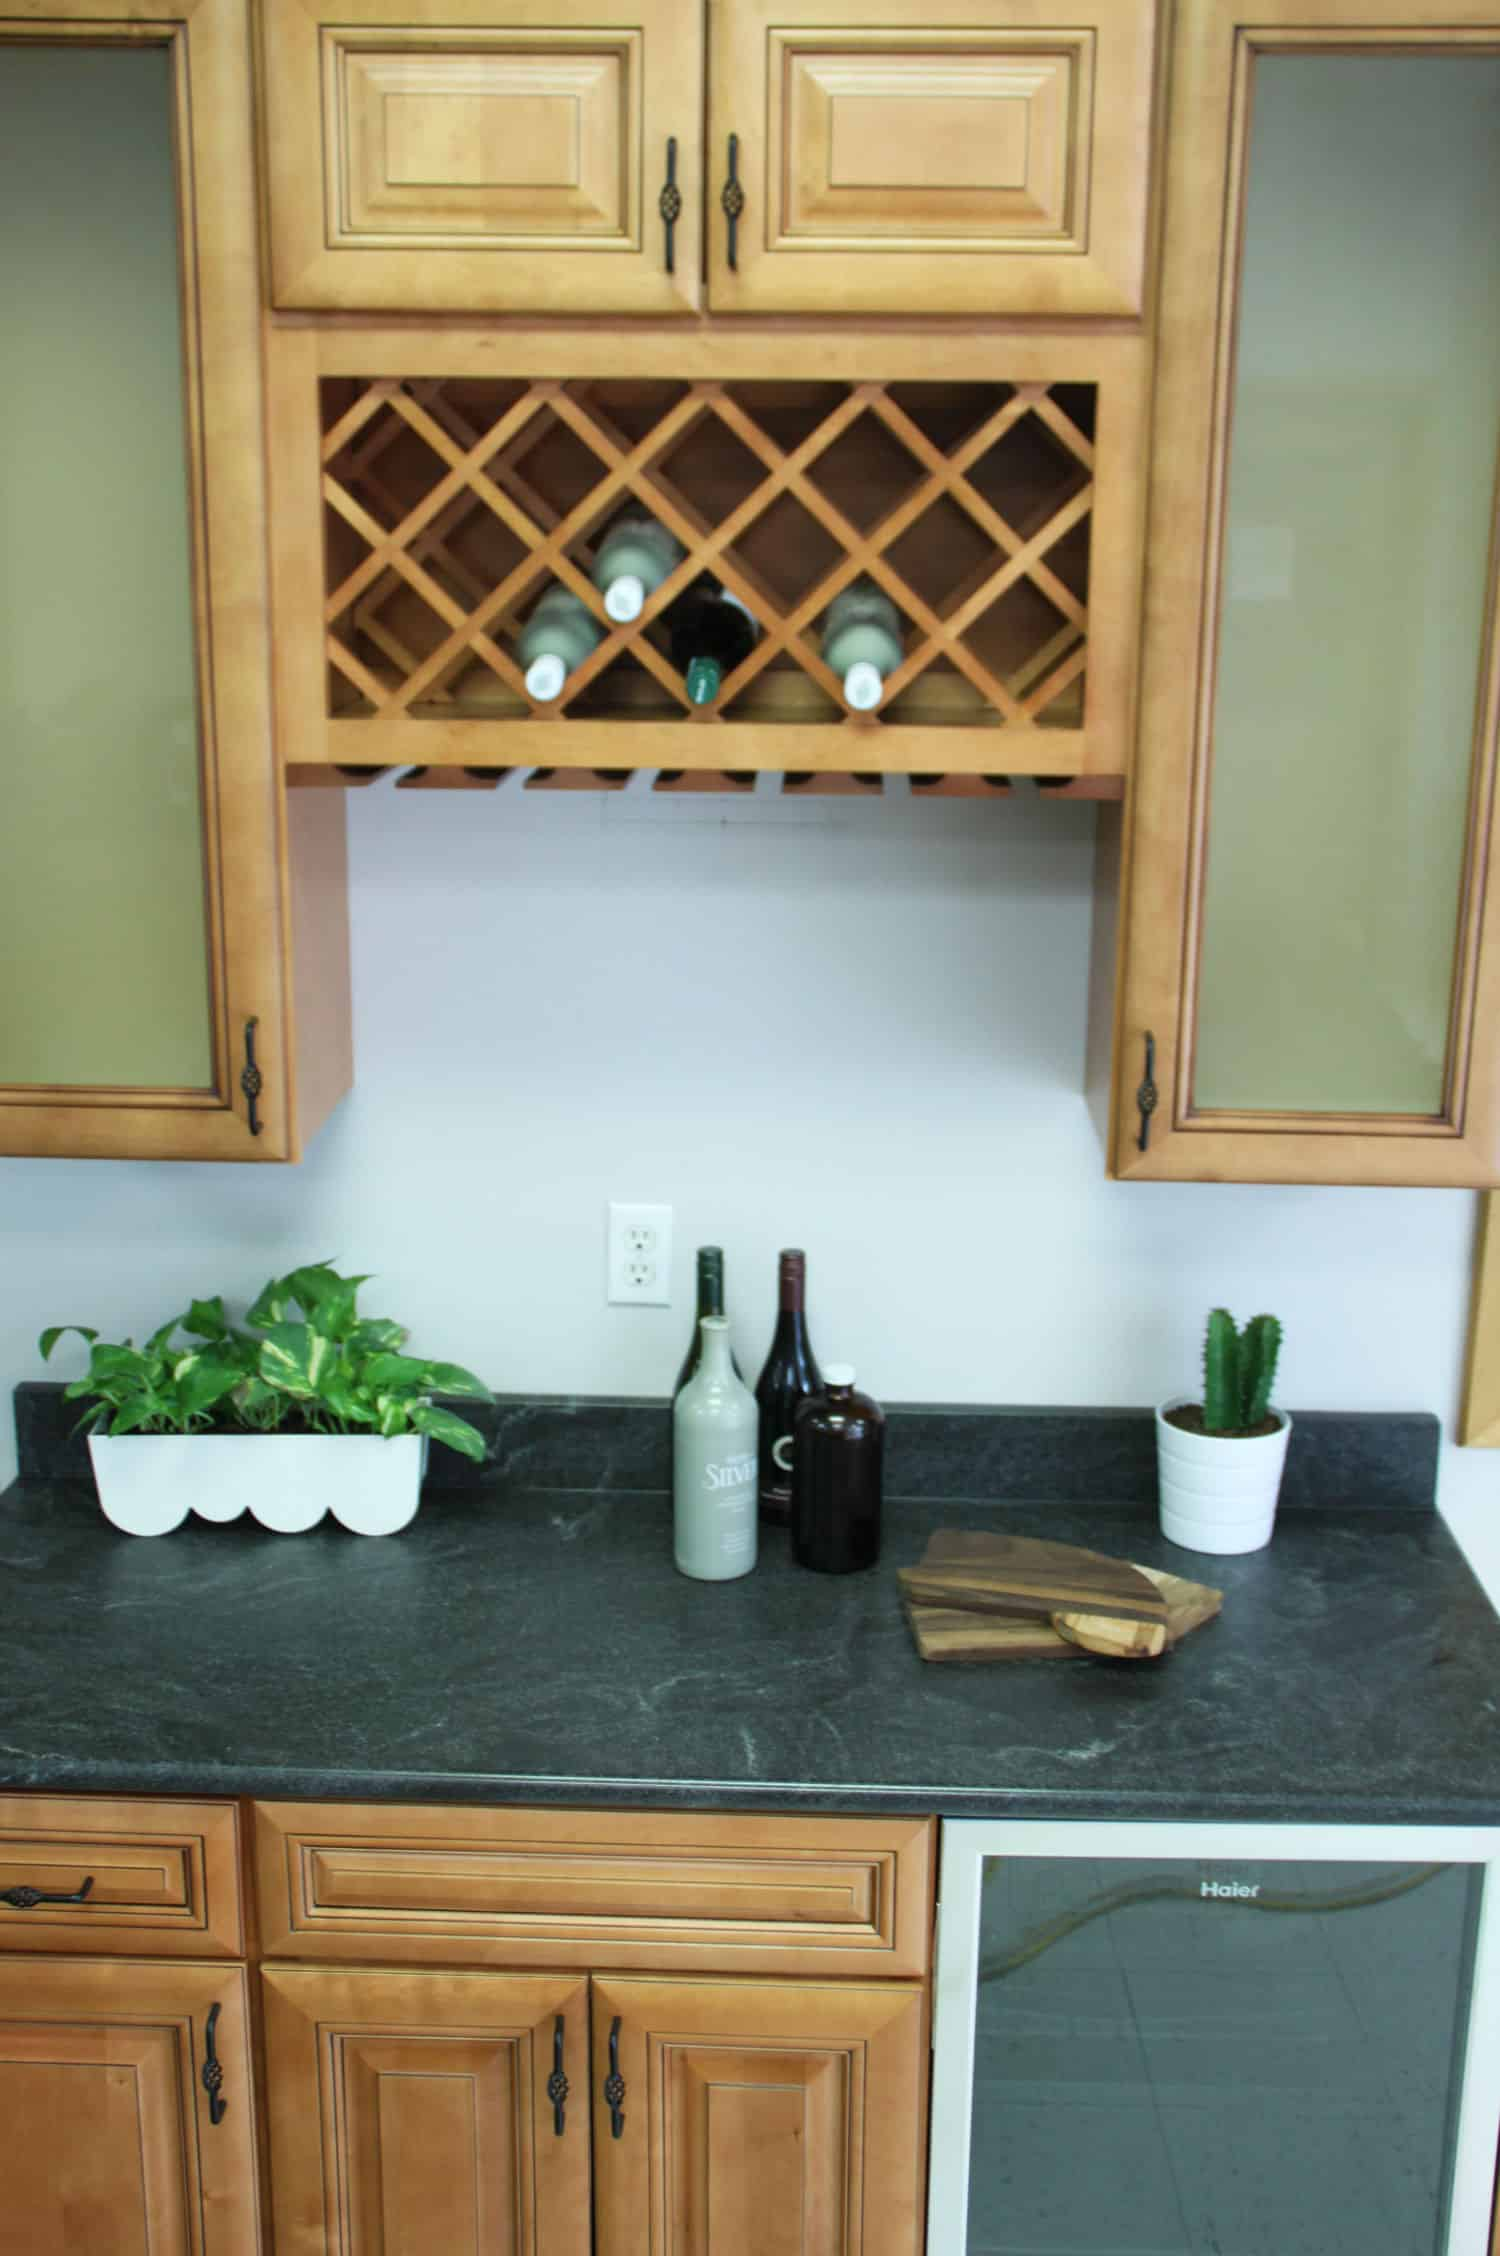 cherry pictures allwood wood cabinet all granite kitchen prefab for of size color cabinets full gallant large